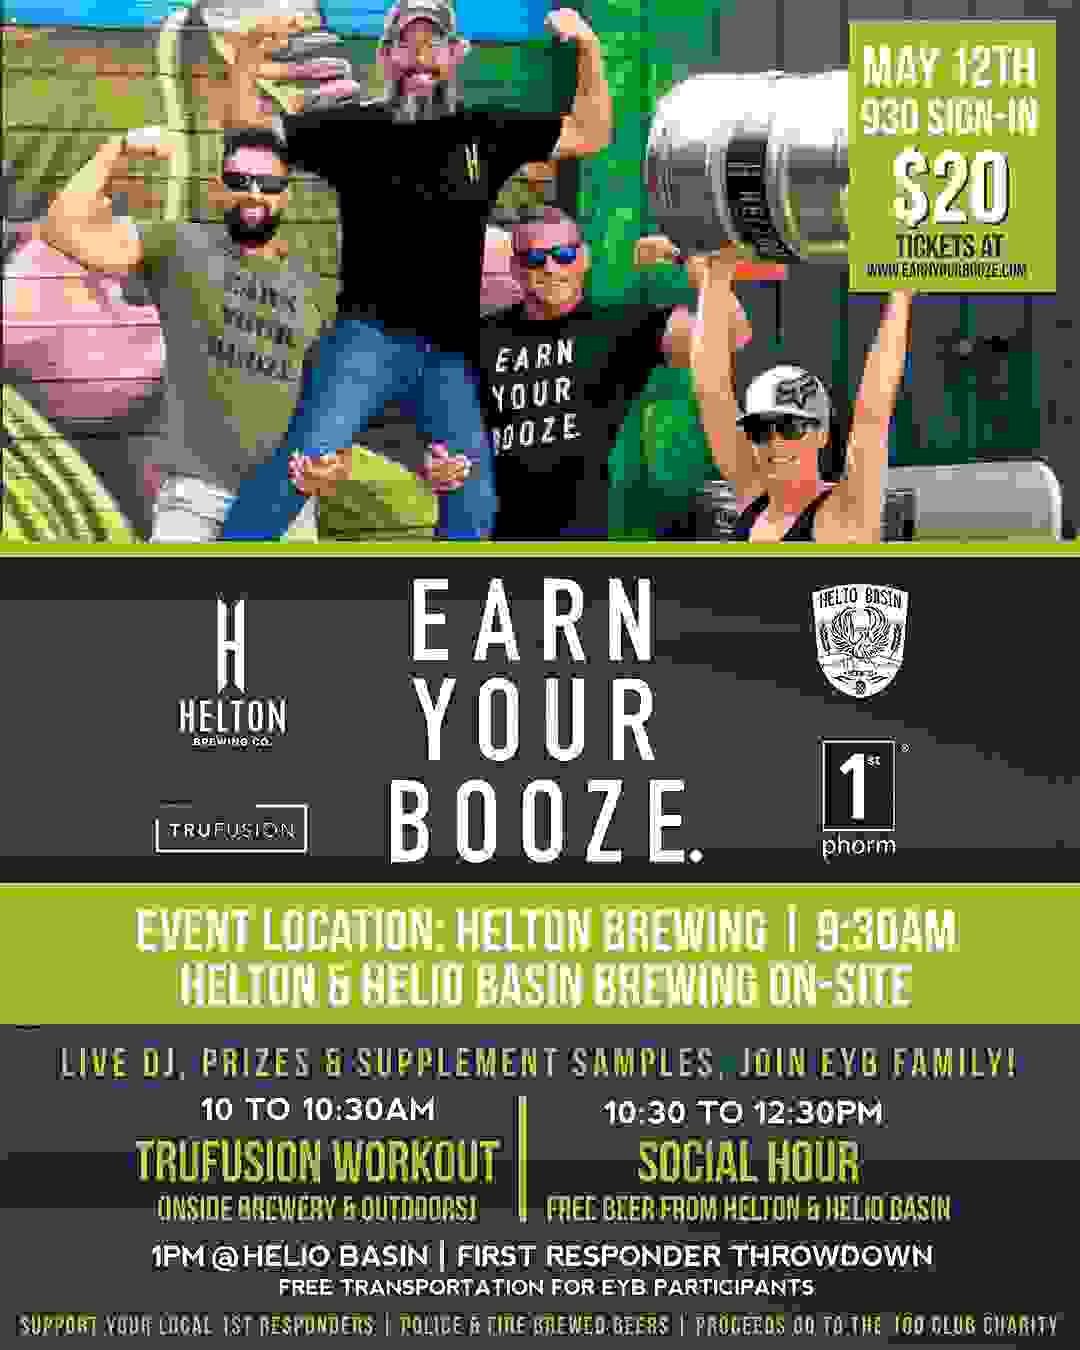 EARN YOUR IPA | EARN YOUR BOOZE | Helton Brewing Co w/ TruFusion (MAY 12 2018)Earn Your Booze